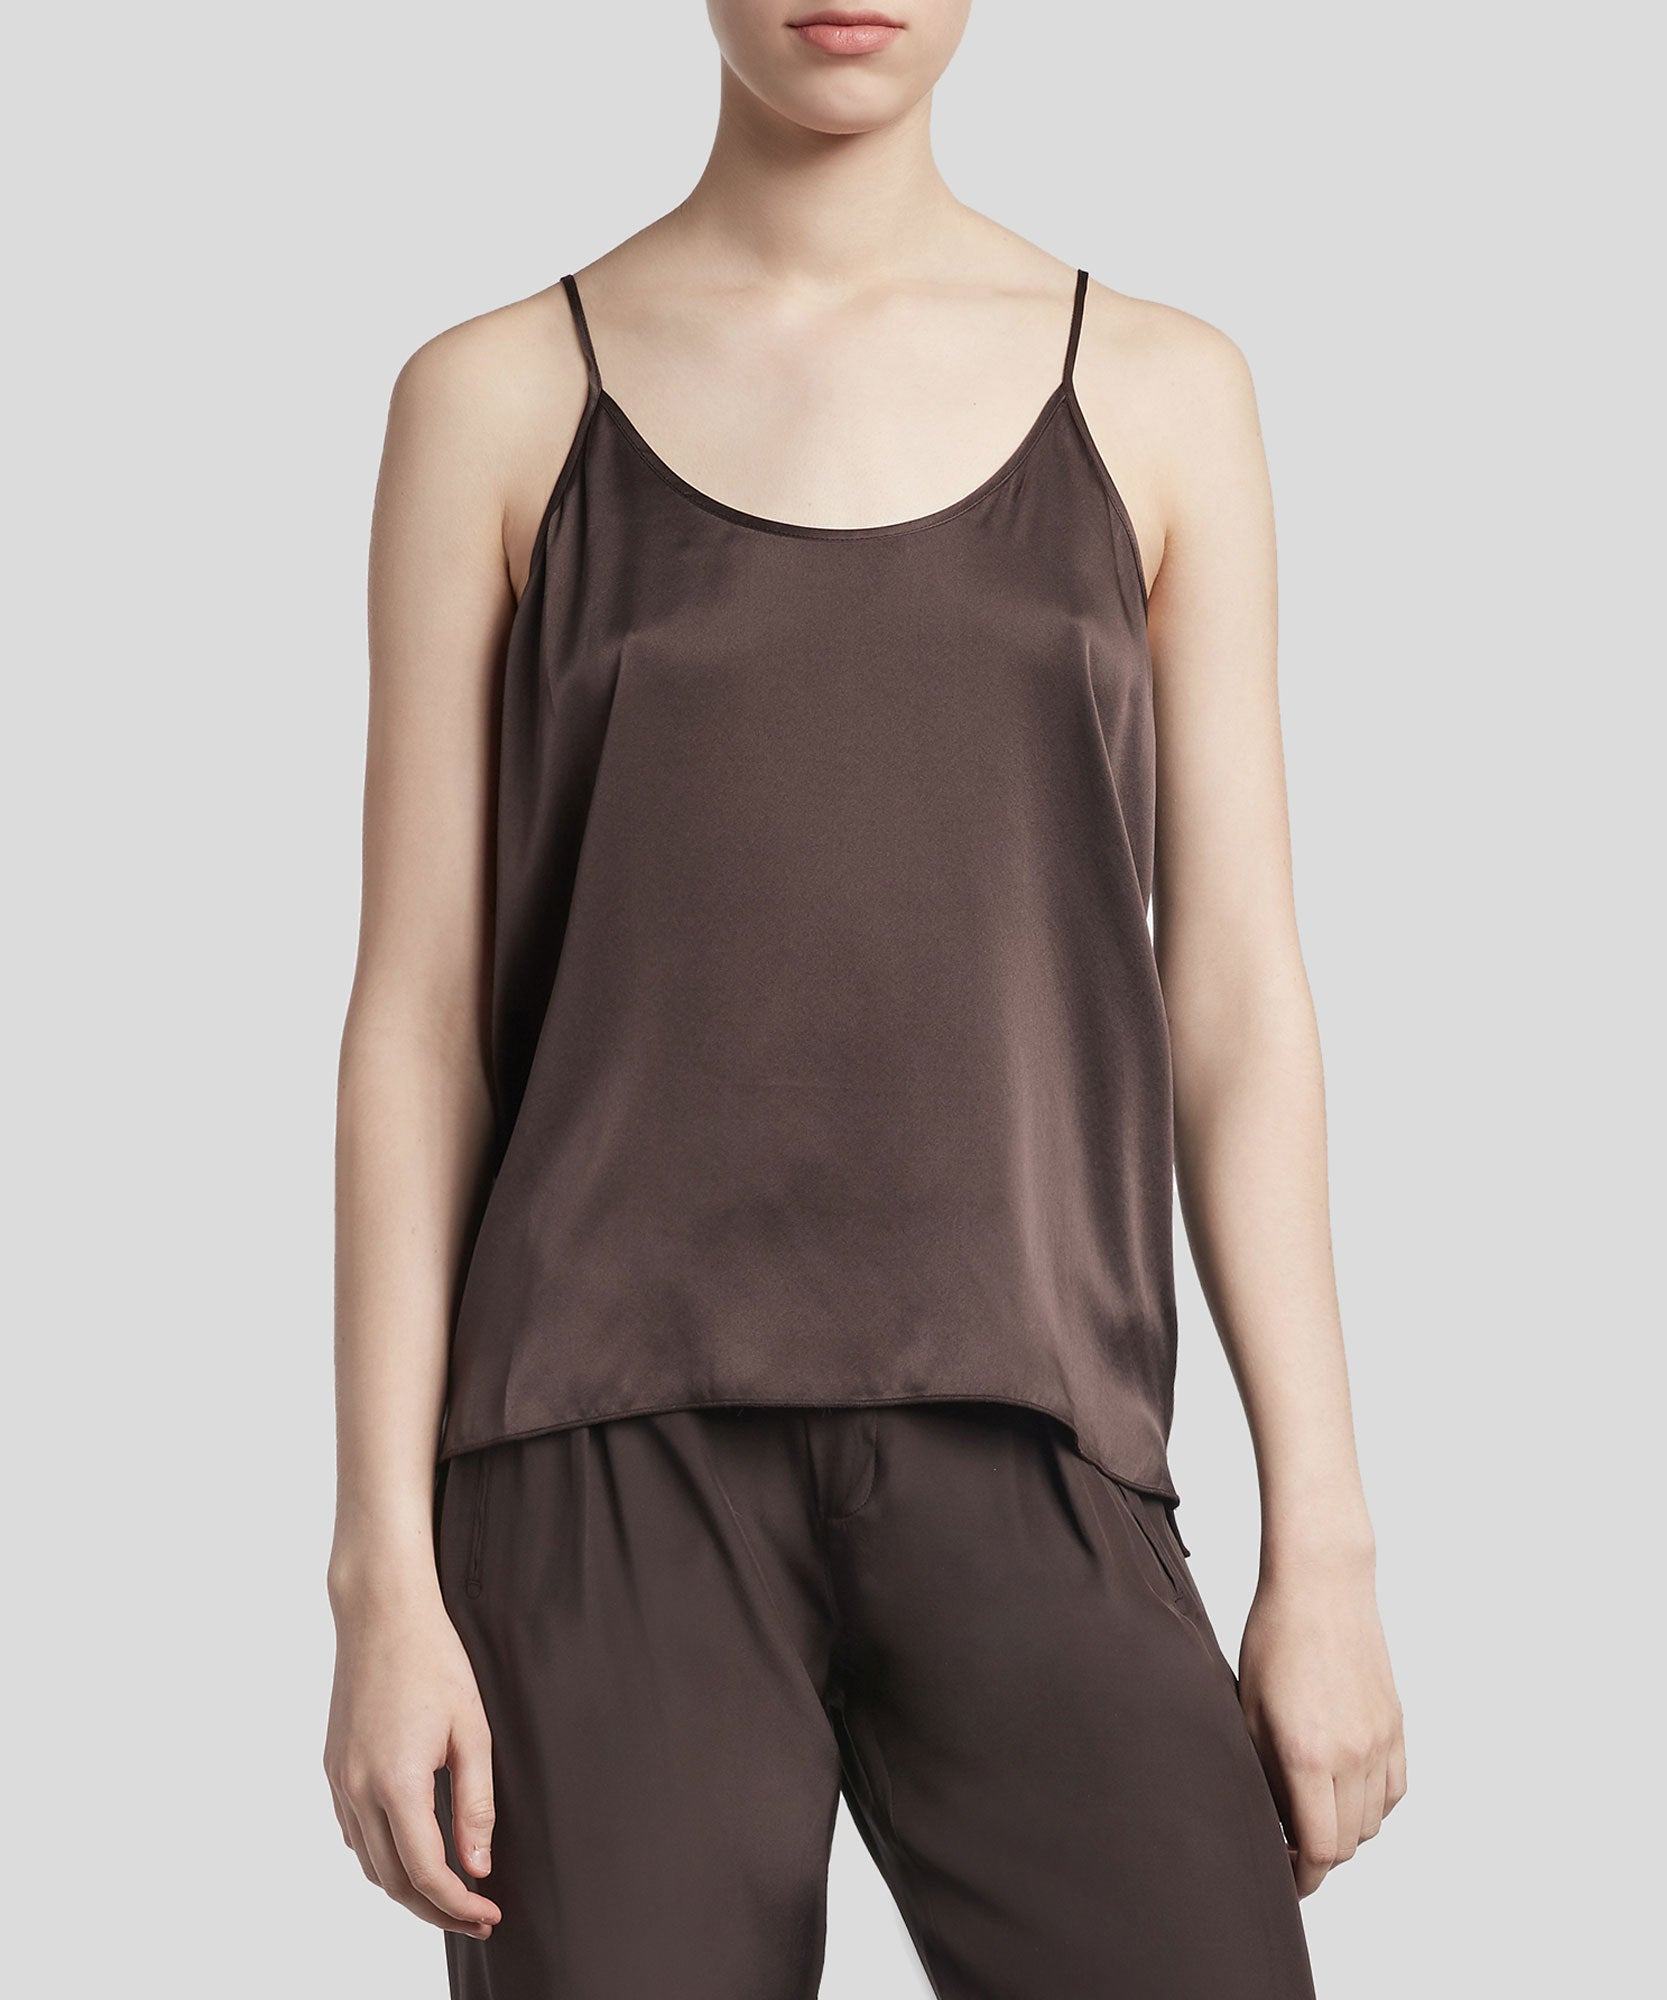 Dark Chocolate Silk Cami - Women's Silk Top by ATM Anthony Thomas Melillo